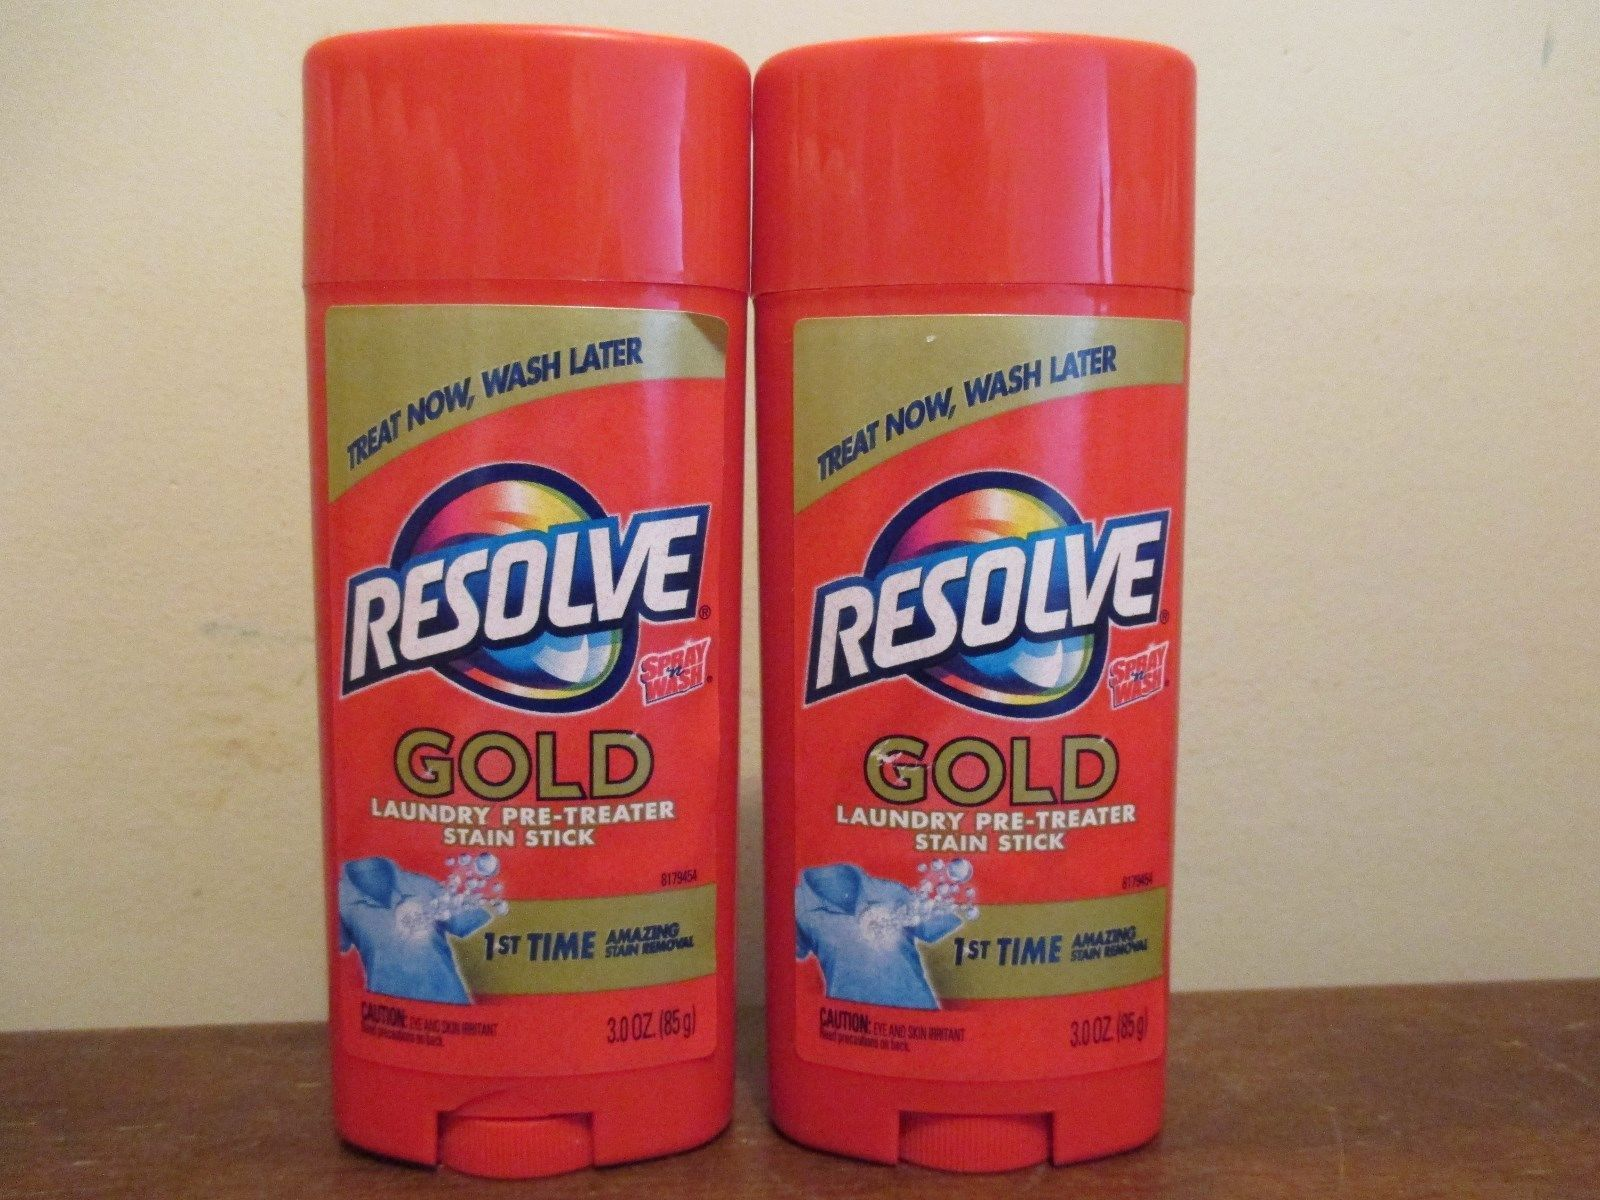 Bleaches And Stain Removers 172208 2 Resolve Gold Laundry Pre